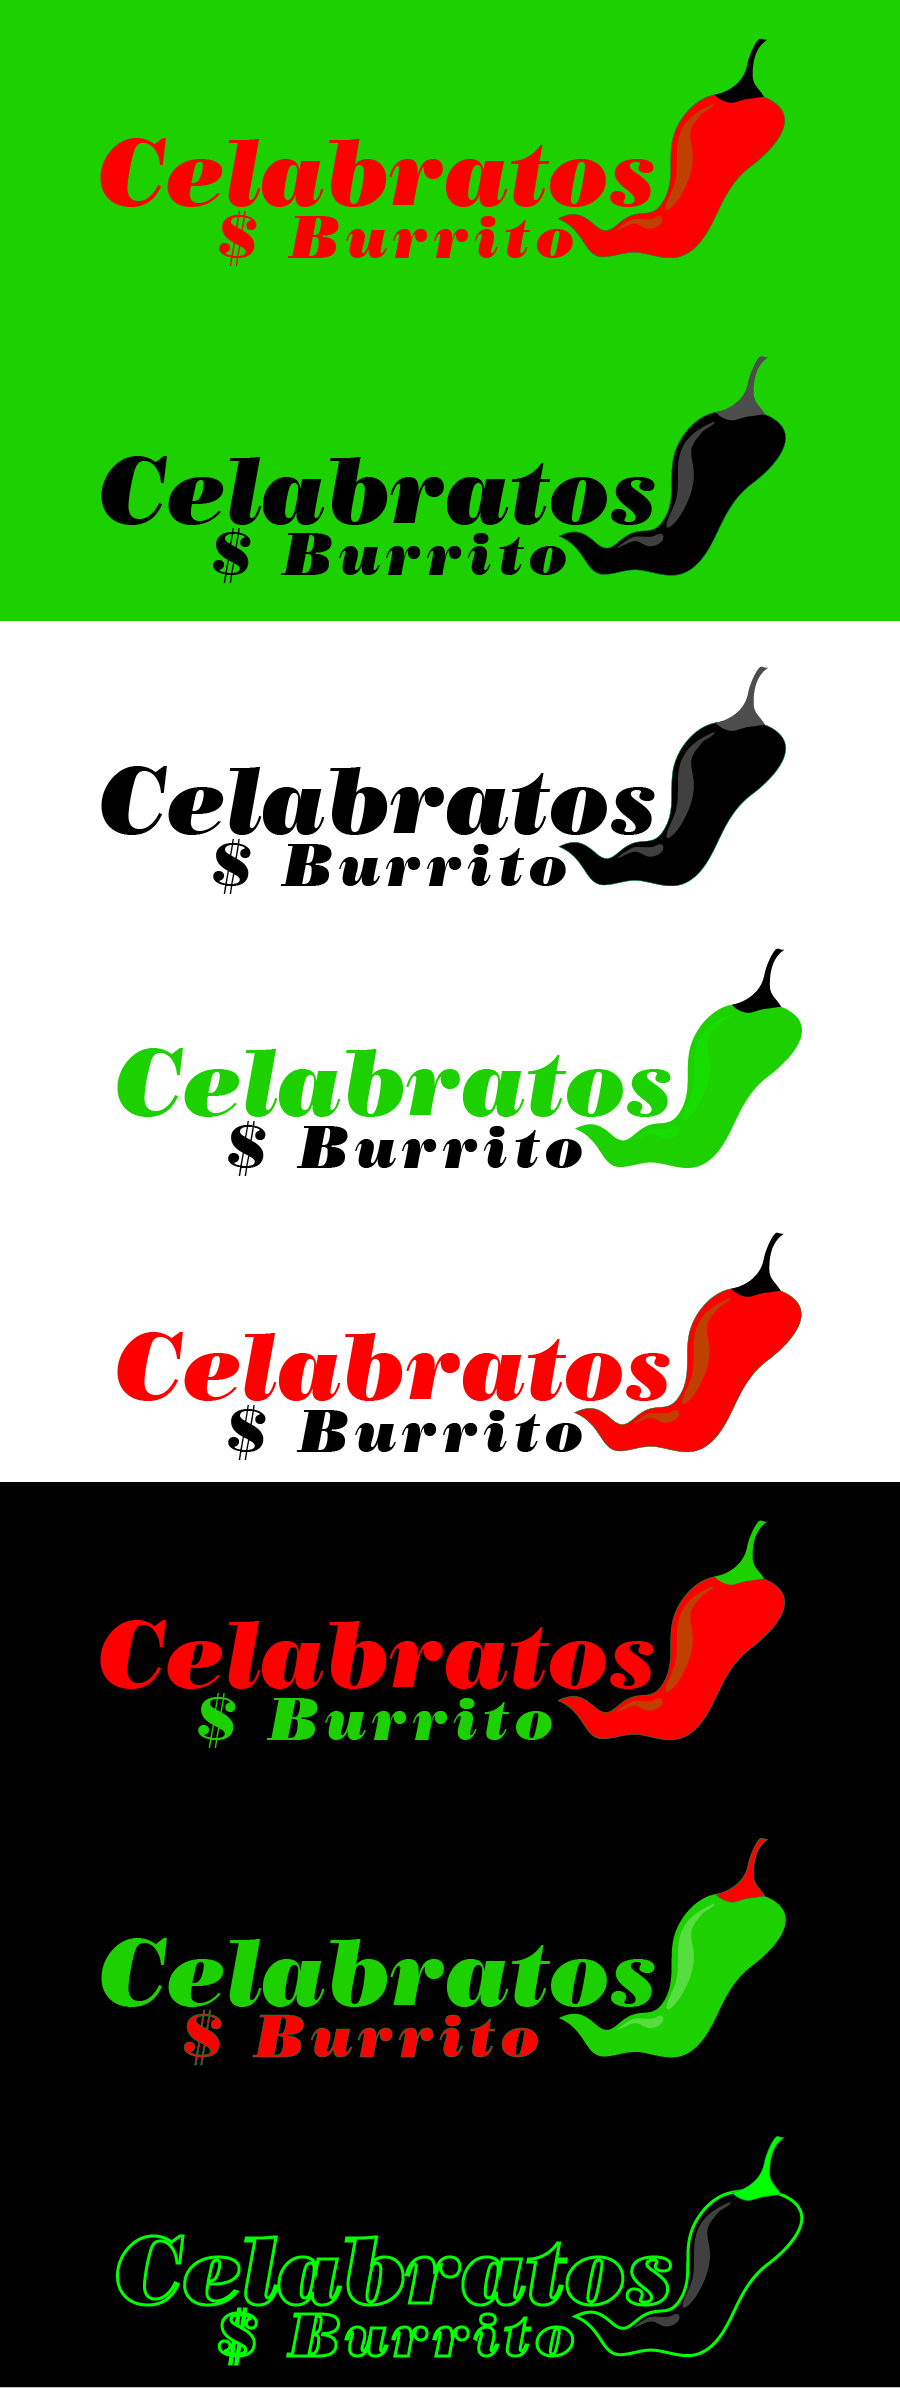 Logo Design by Private User - Entry No. 102 in the Logo Design Contest Imaginative Logo Design for Celabratos.